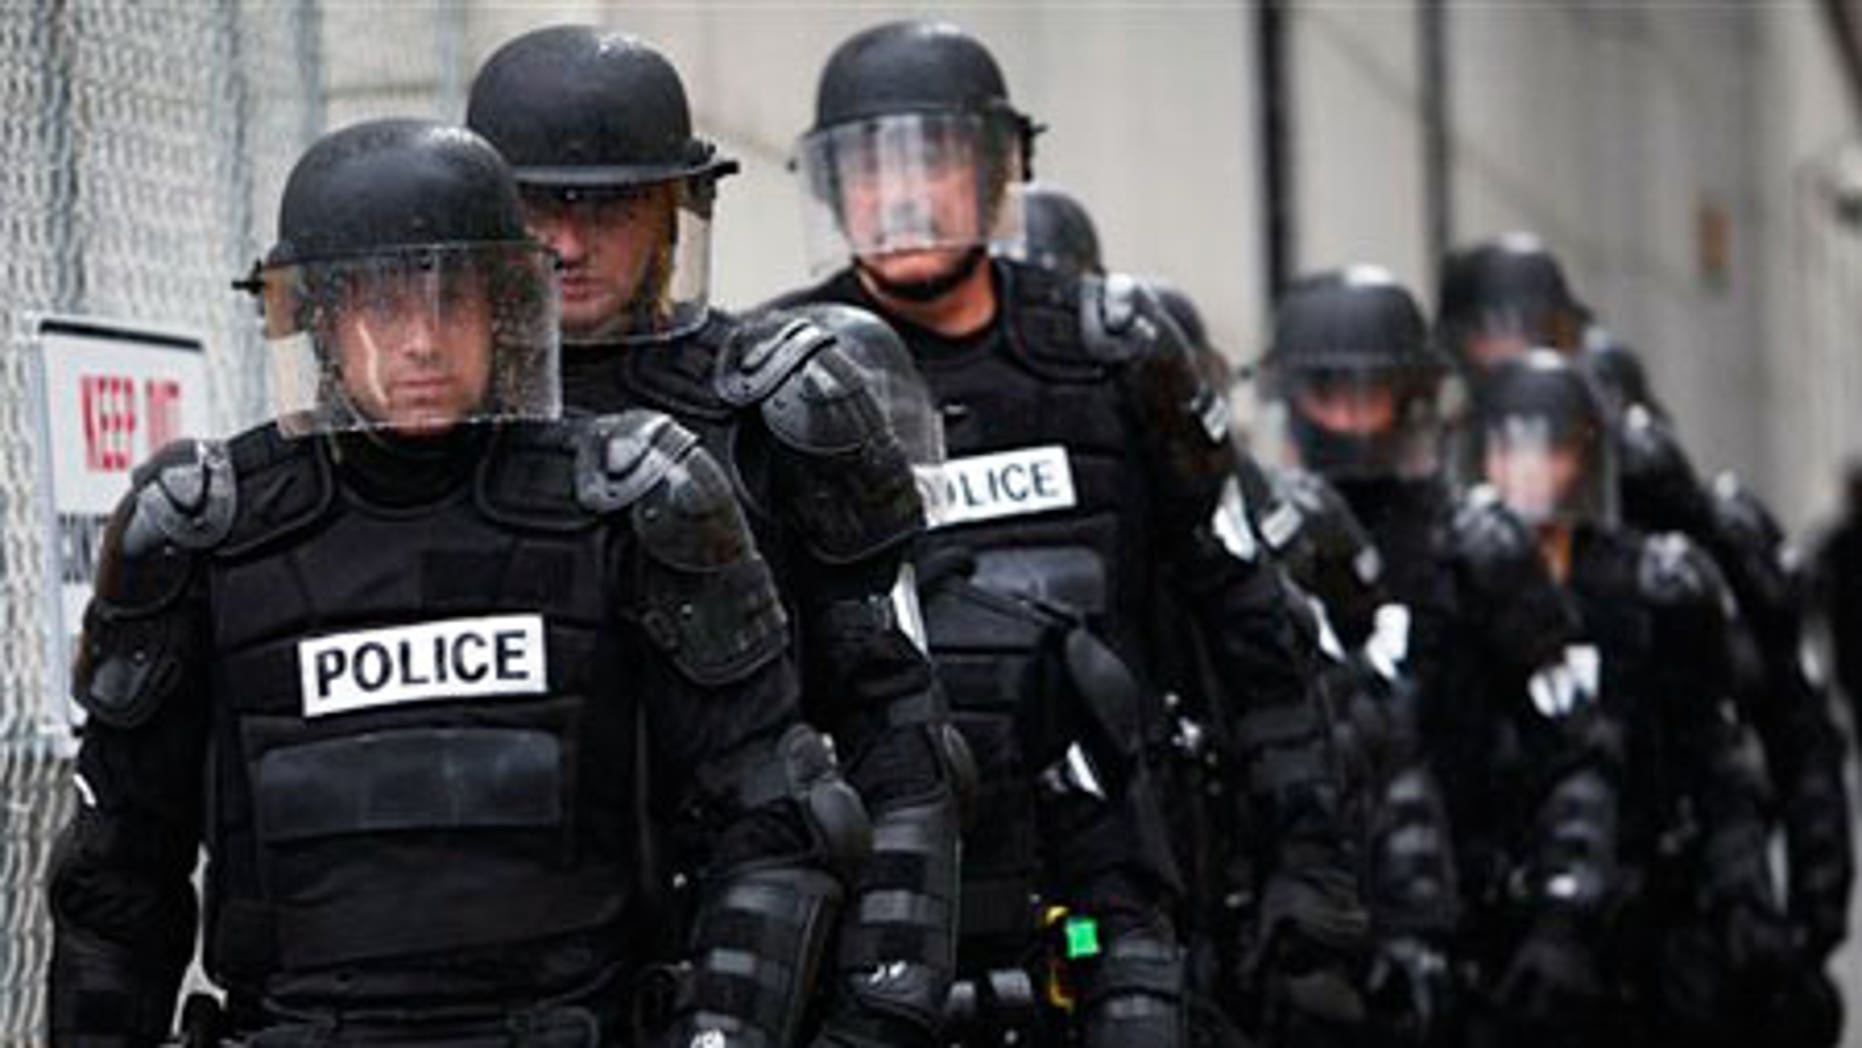 Sept. 22: Police officers in riot gear are seen in Pittsburgh.